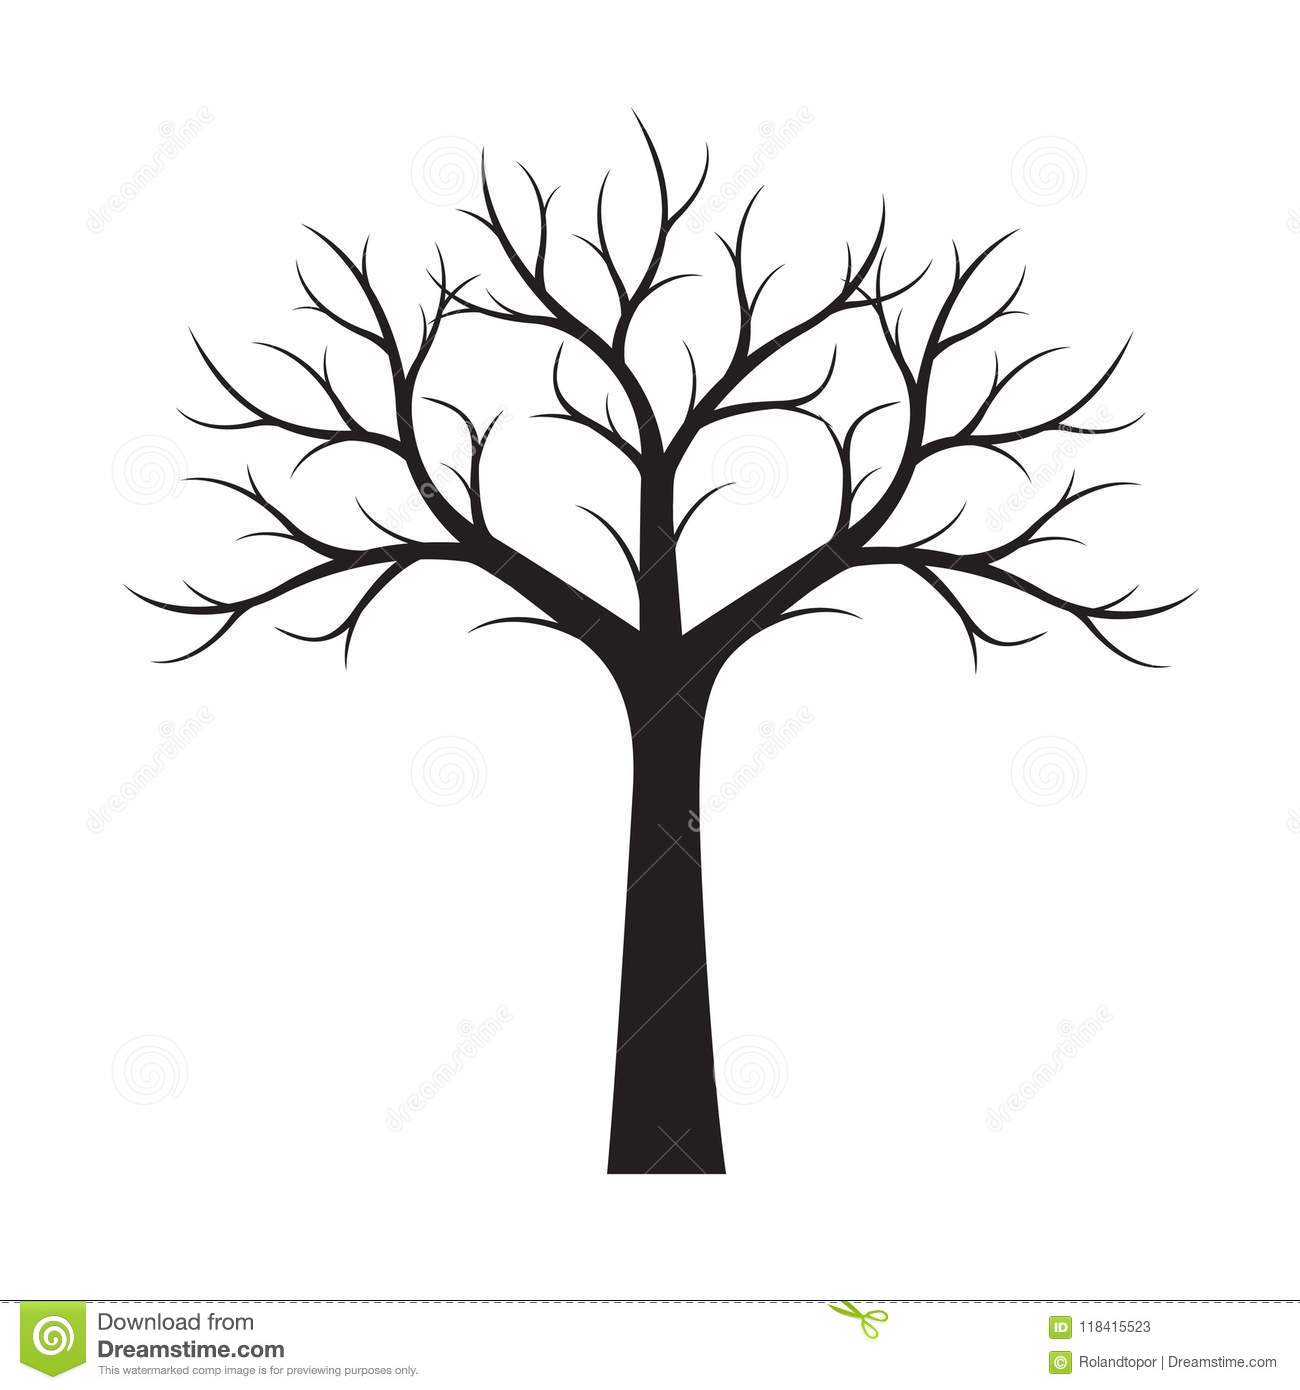 Shape of black tree without leaves vector illustration stock download shape of black tree without leaves vector illustration stock vector illustration of thecheapjerseys Gallery